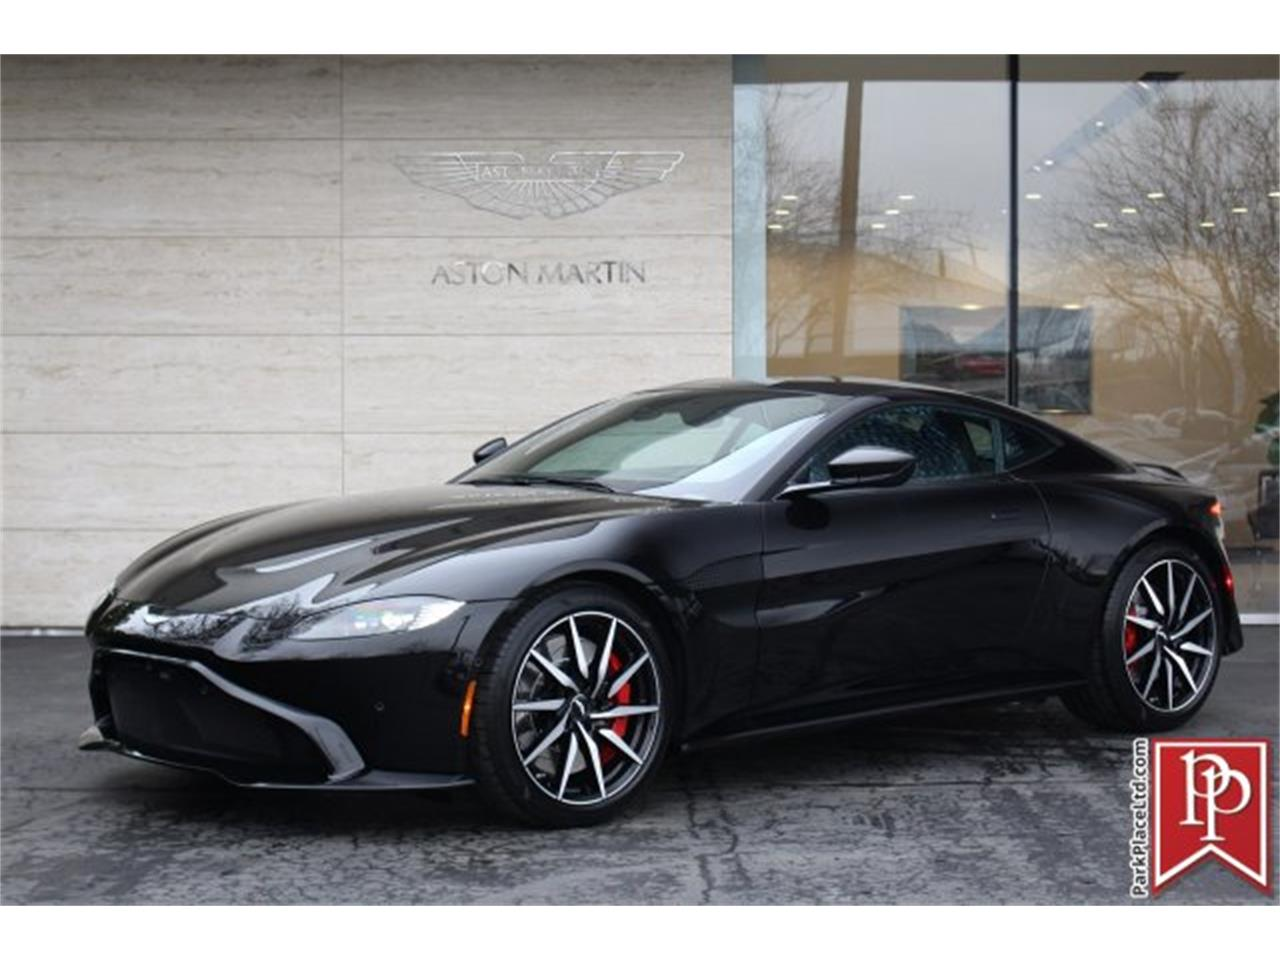 2019 Aston Martin Vantage for sale in Bellevue, WA – photo 3